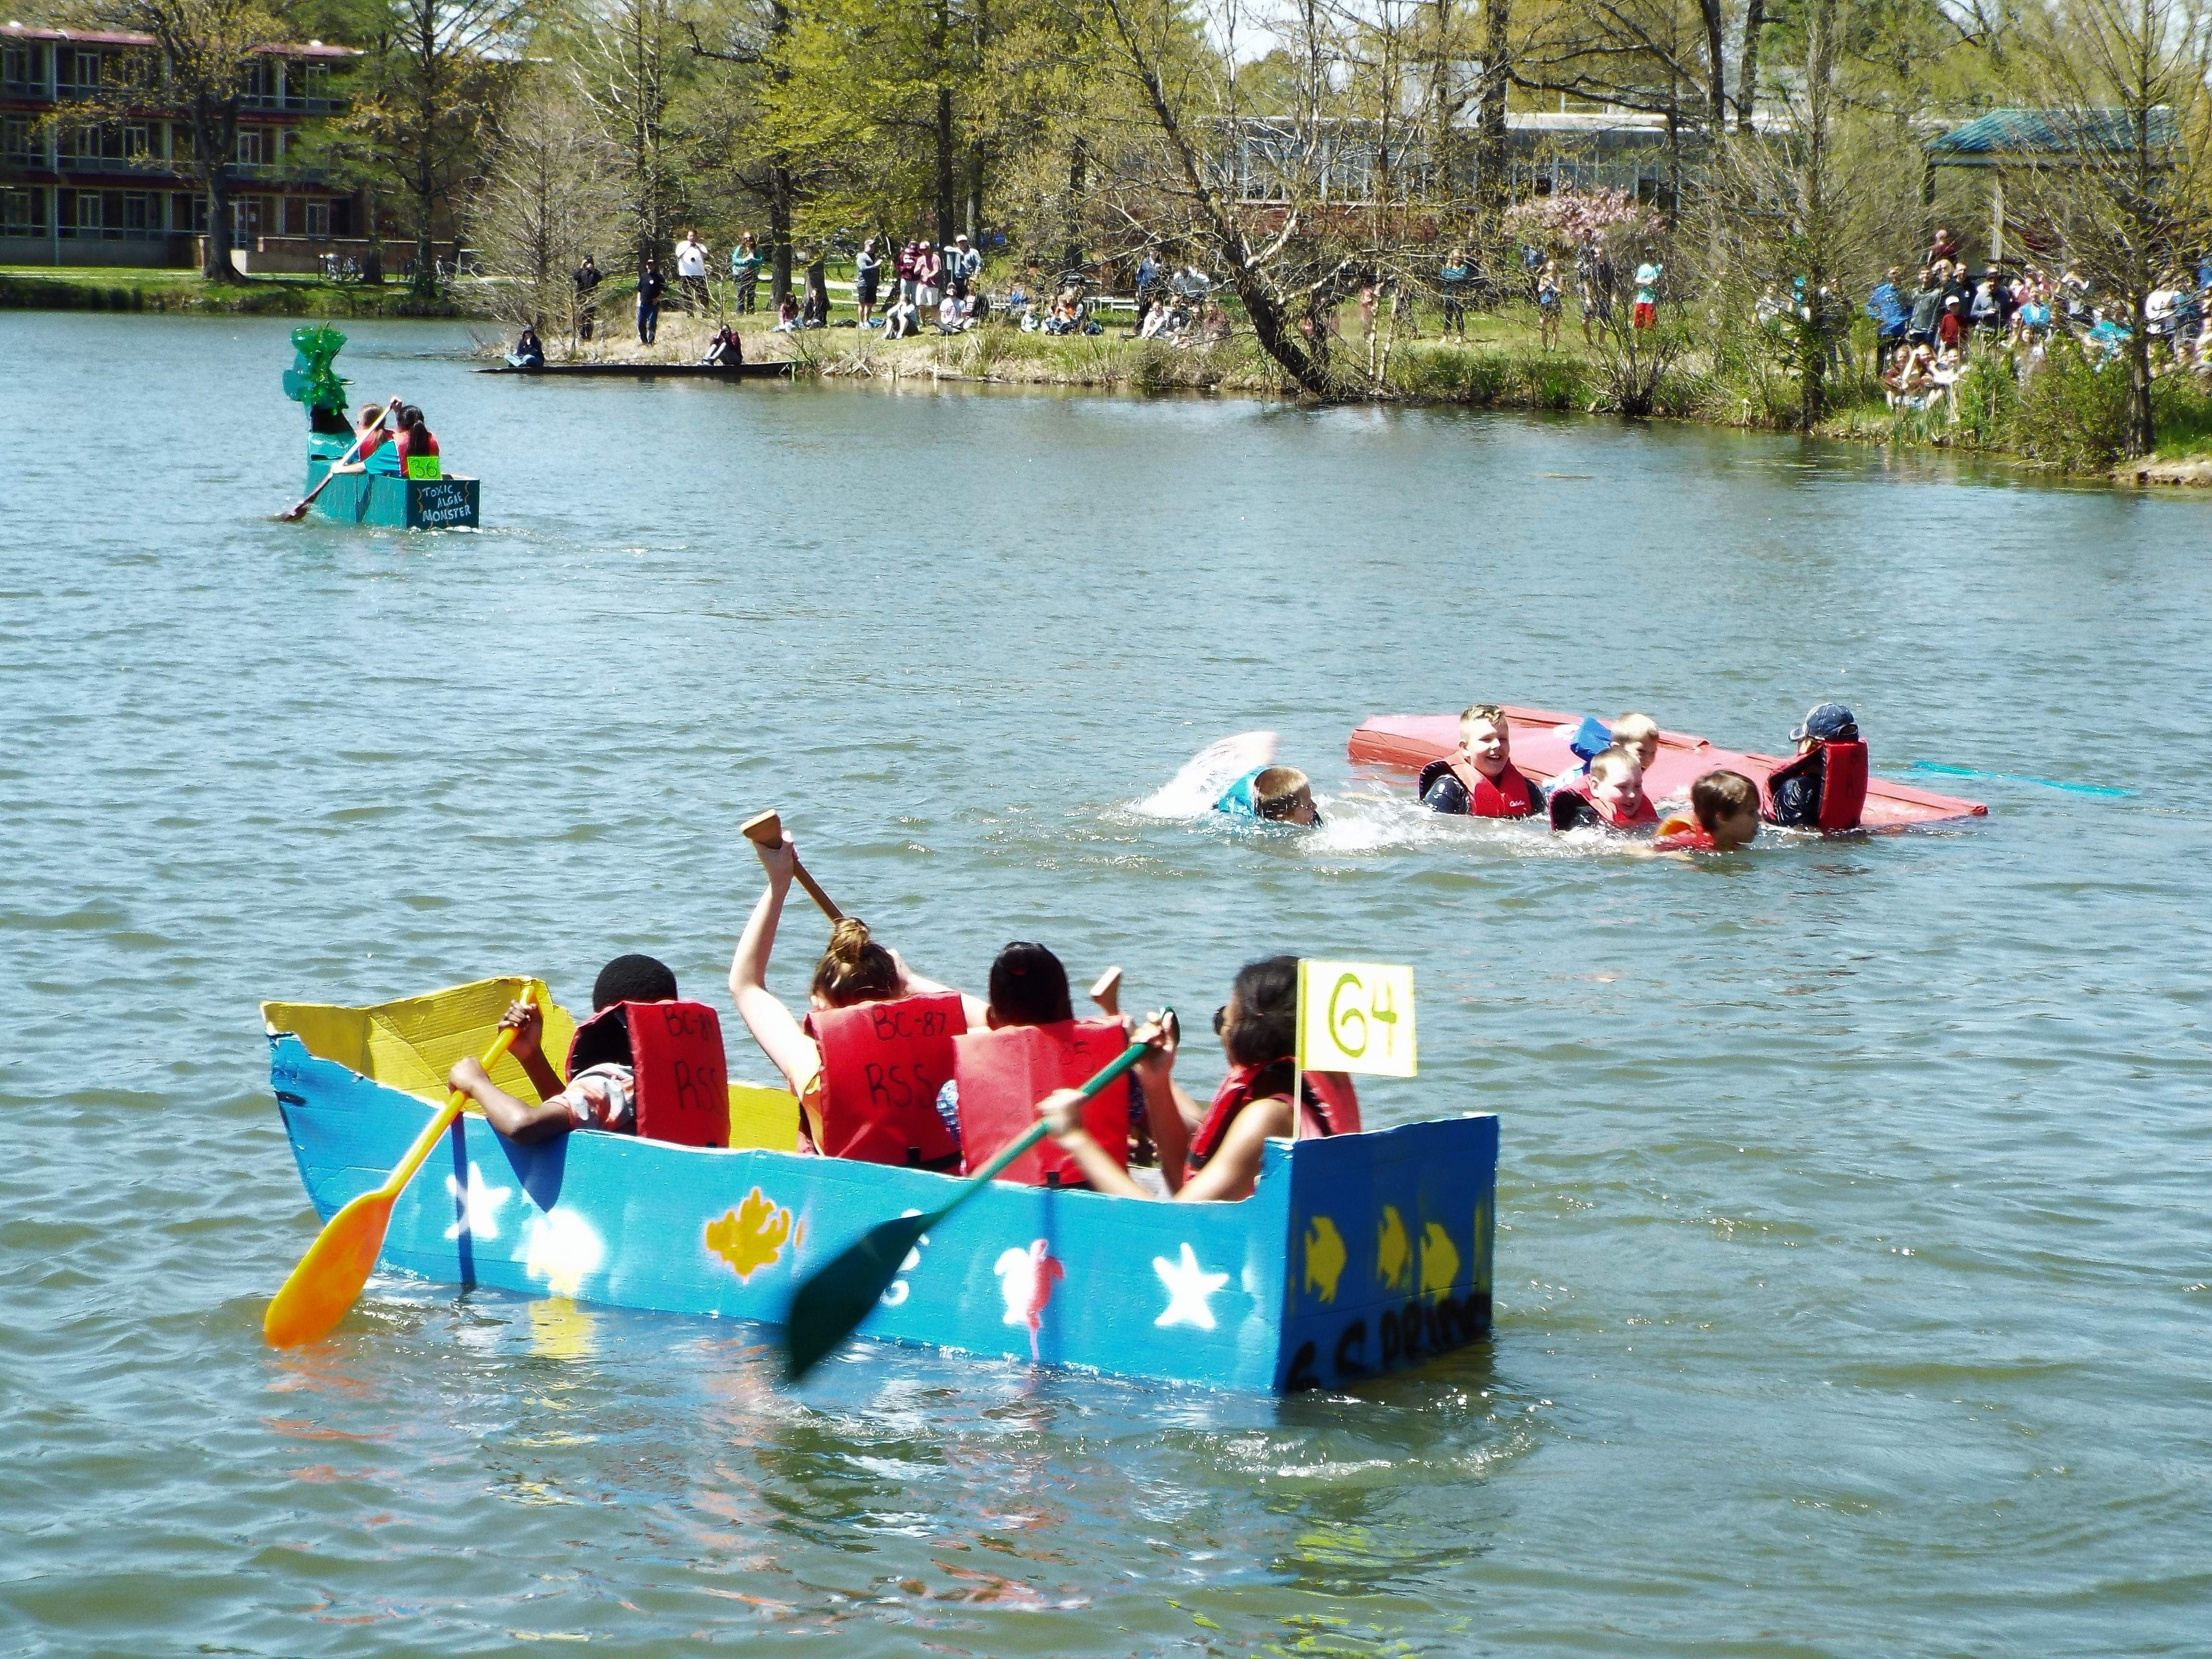 The Boys and Girls Club of Carbondale's boat was the first to sink in the first heat of the Cardboard Boat Regatta Saturday.